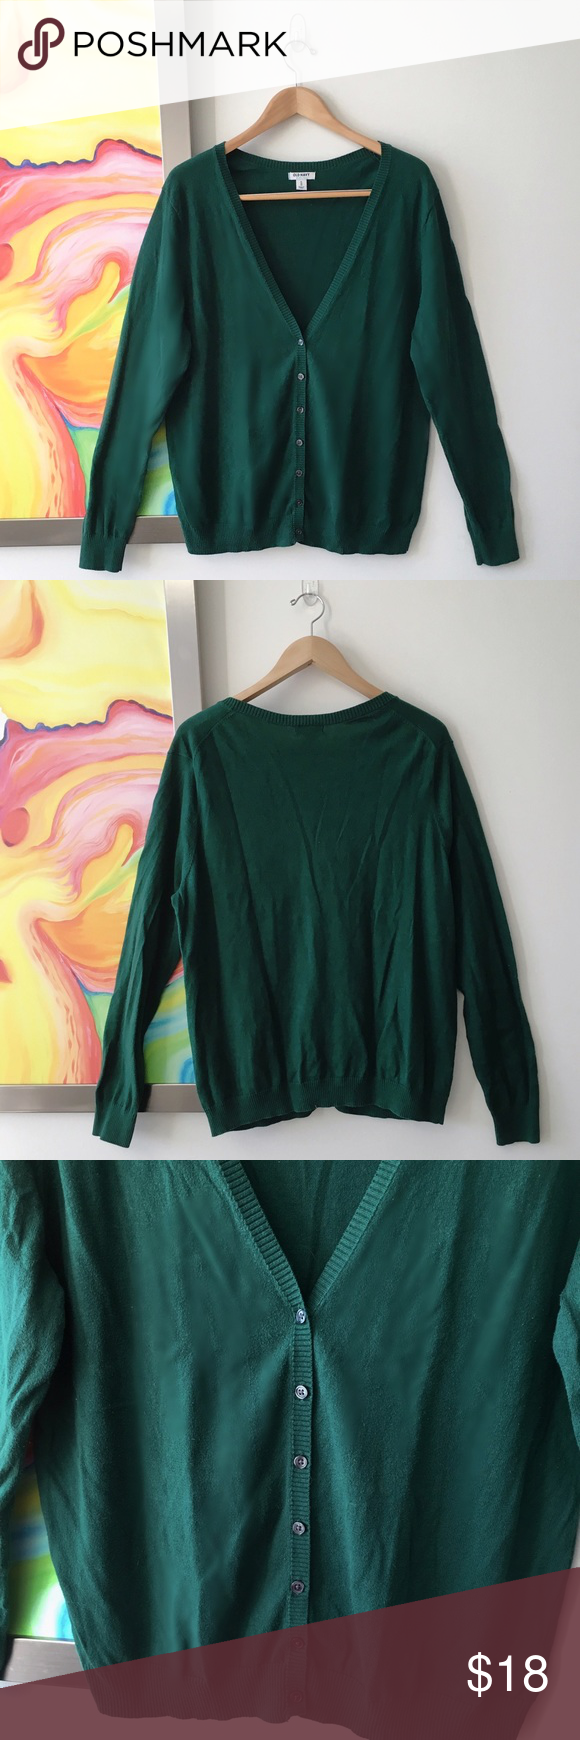 """OLD NAVY Evergreen Cotton Boyfriend Cardigan Pre-loved. Rich evergreen color. Approx measurements taken flat: Hips 21""""; armpit to armpit 24""""; Length 28"""" Old Navy Sweaters Cardigans"""